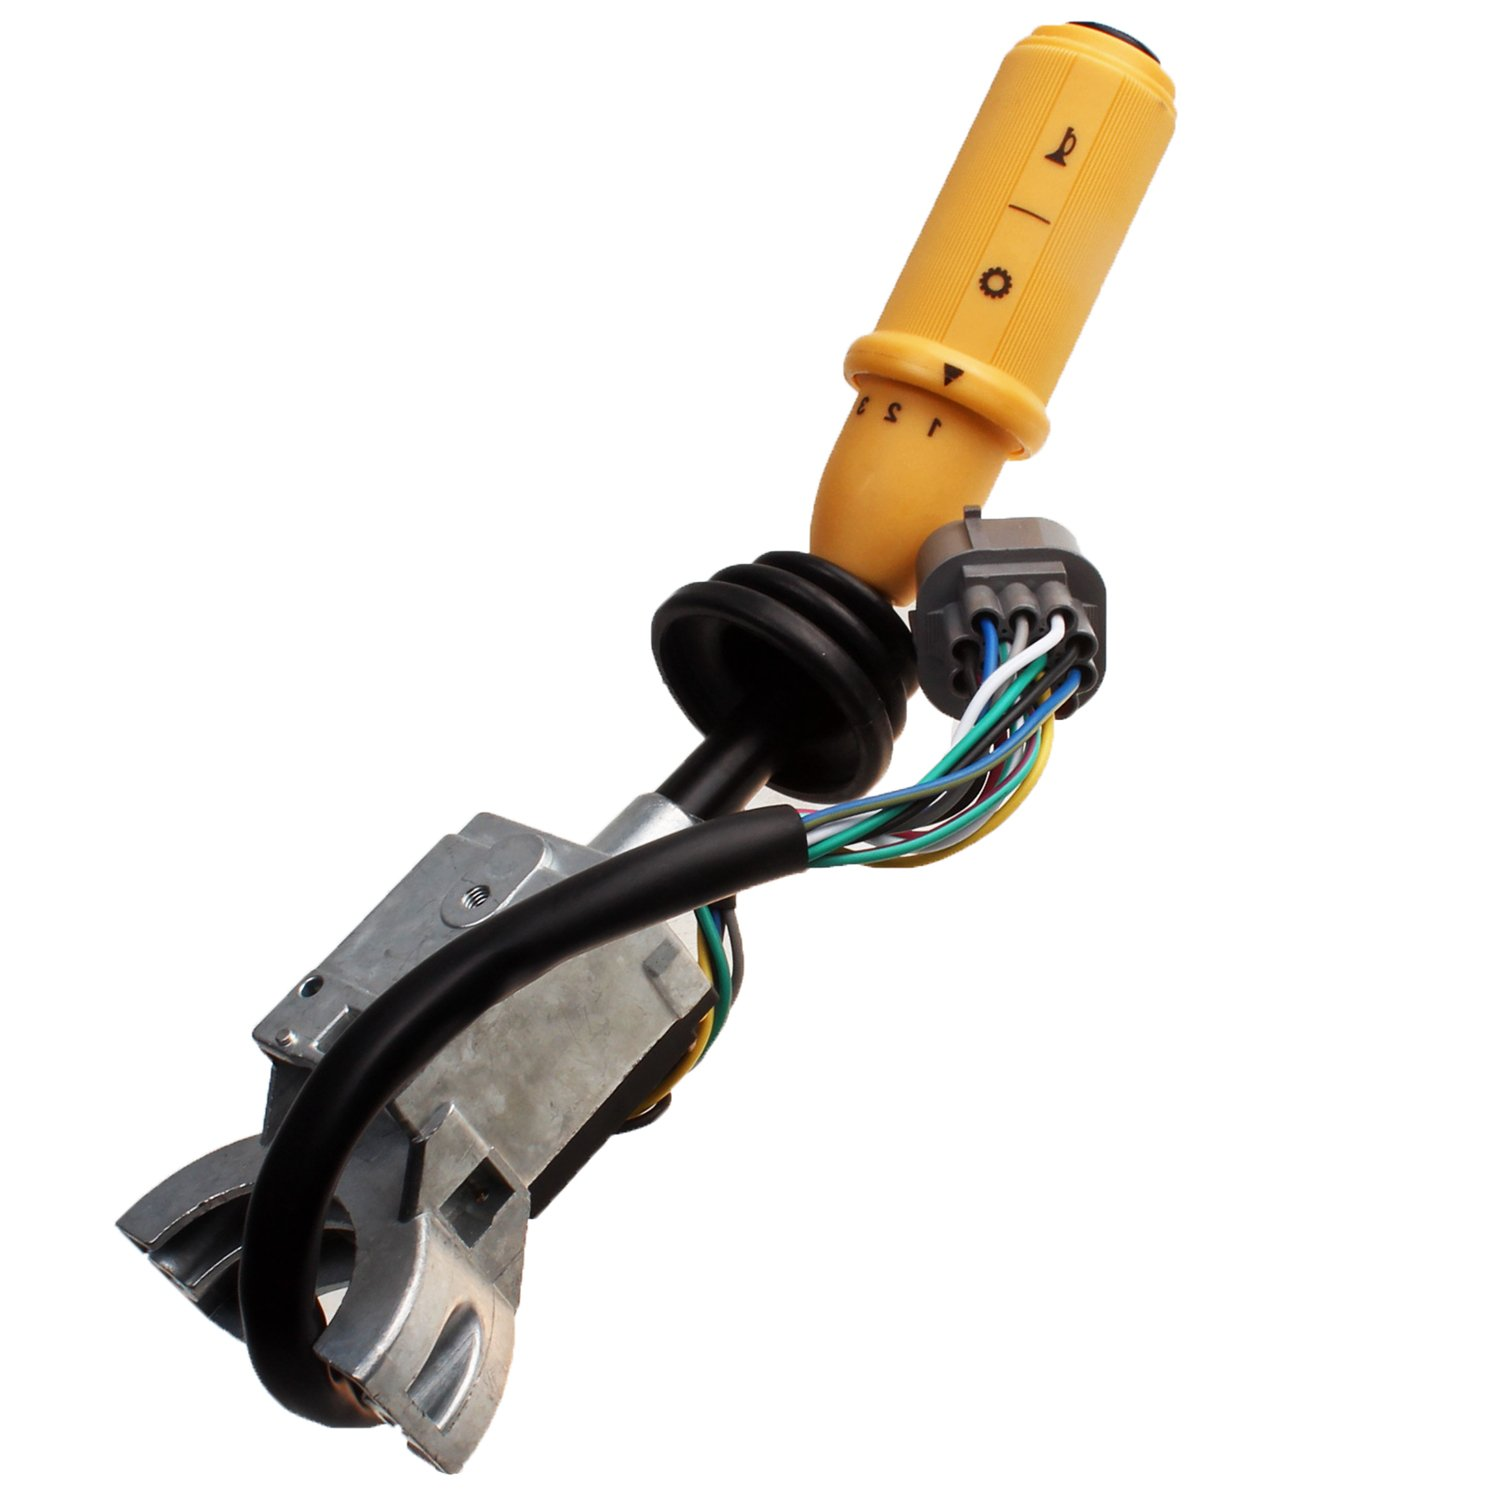 Mover Parts Forward /& Reverse Column Switch 701//80145 70180145 for JCB Parts with 1 Year Warranty